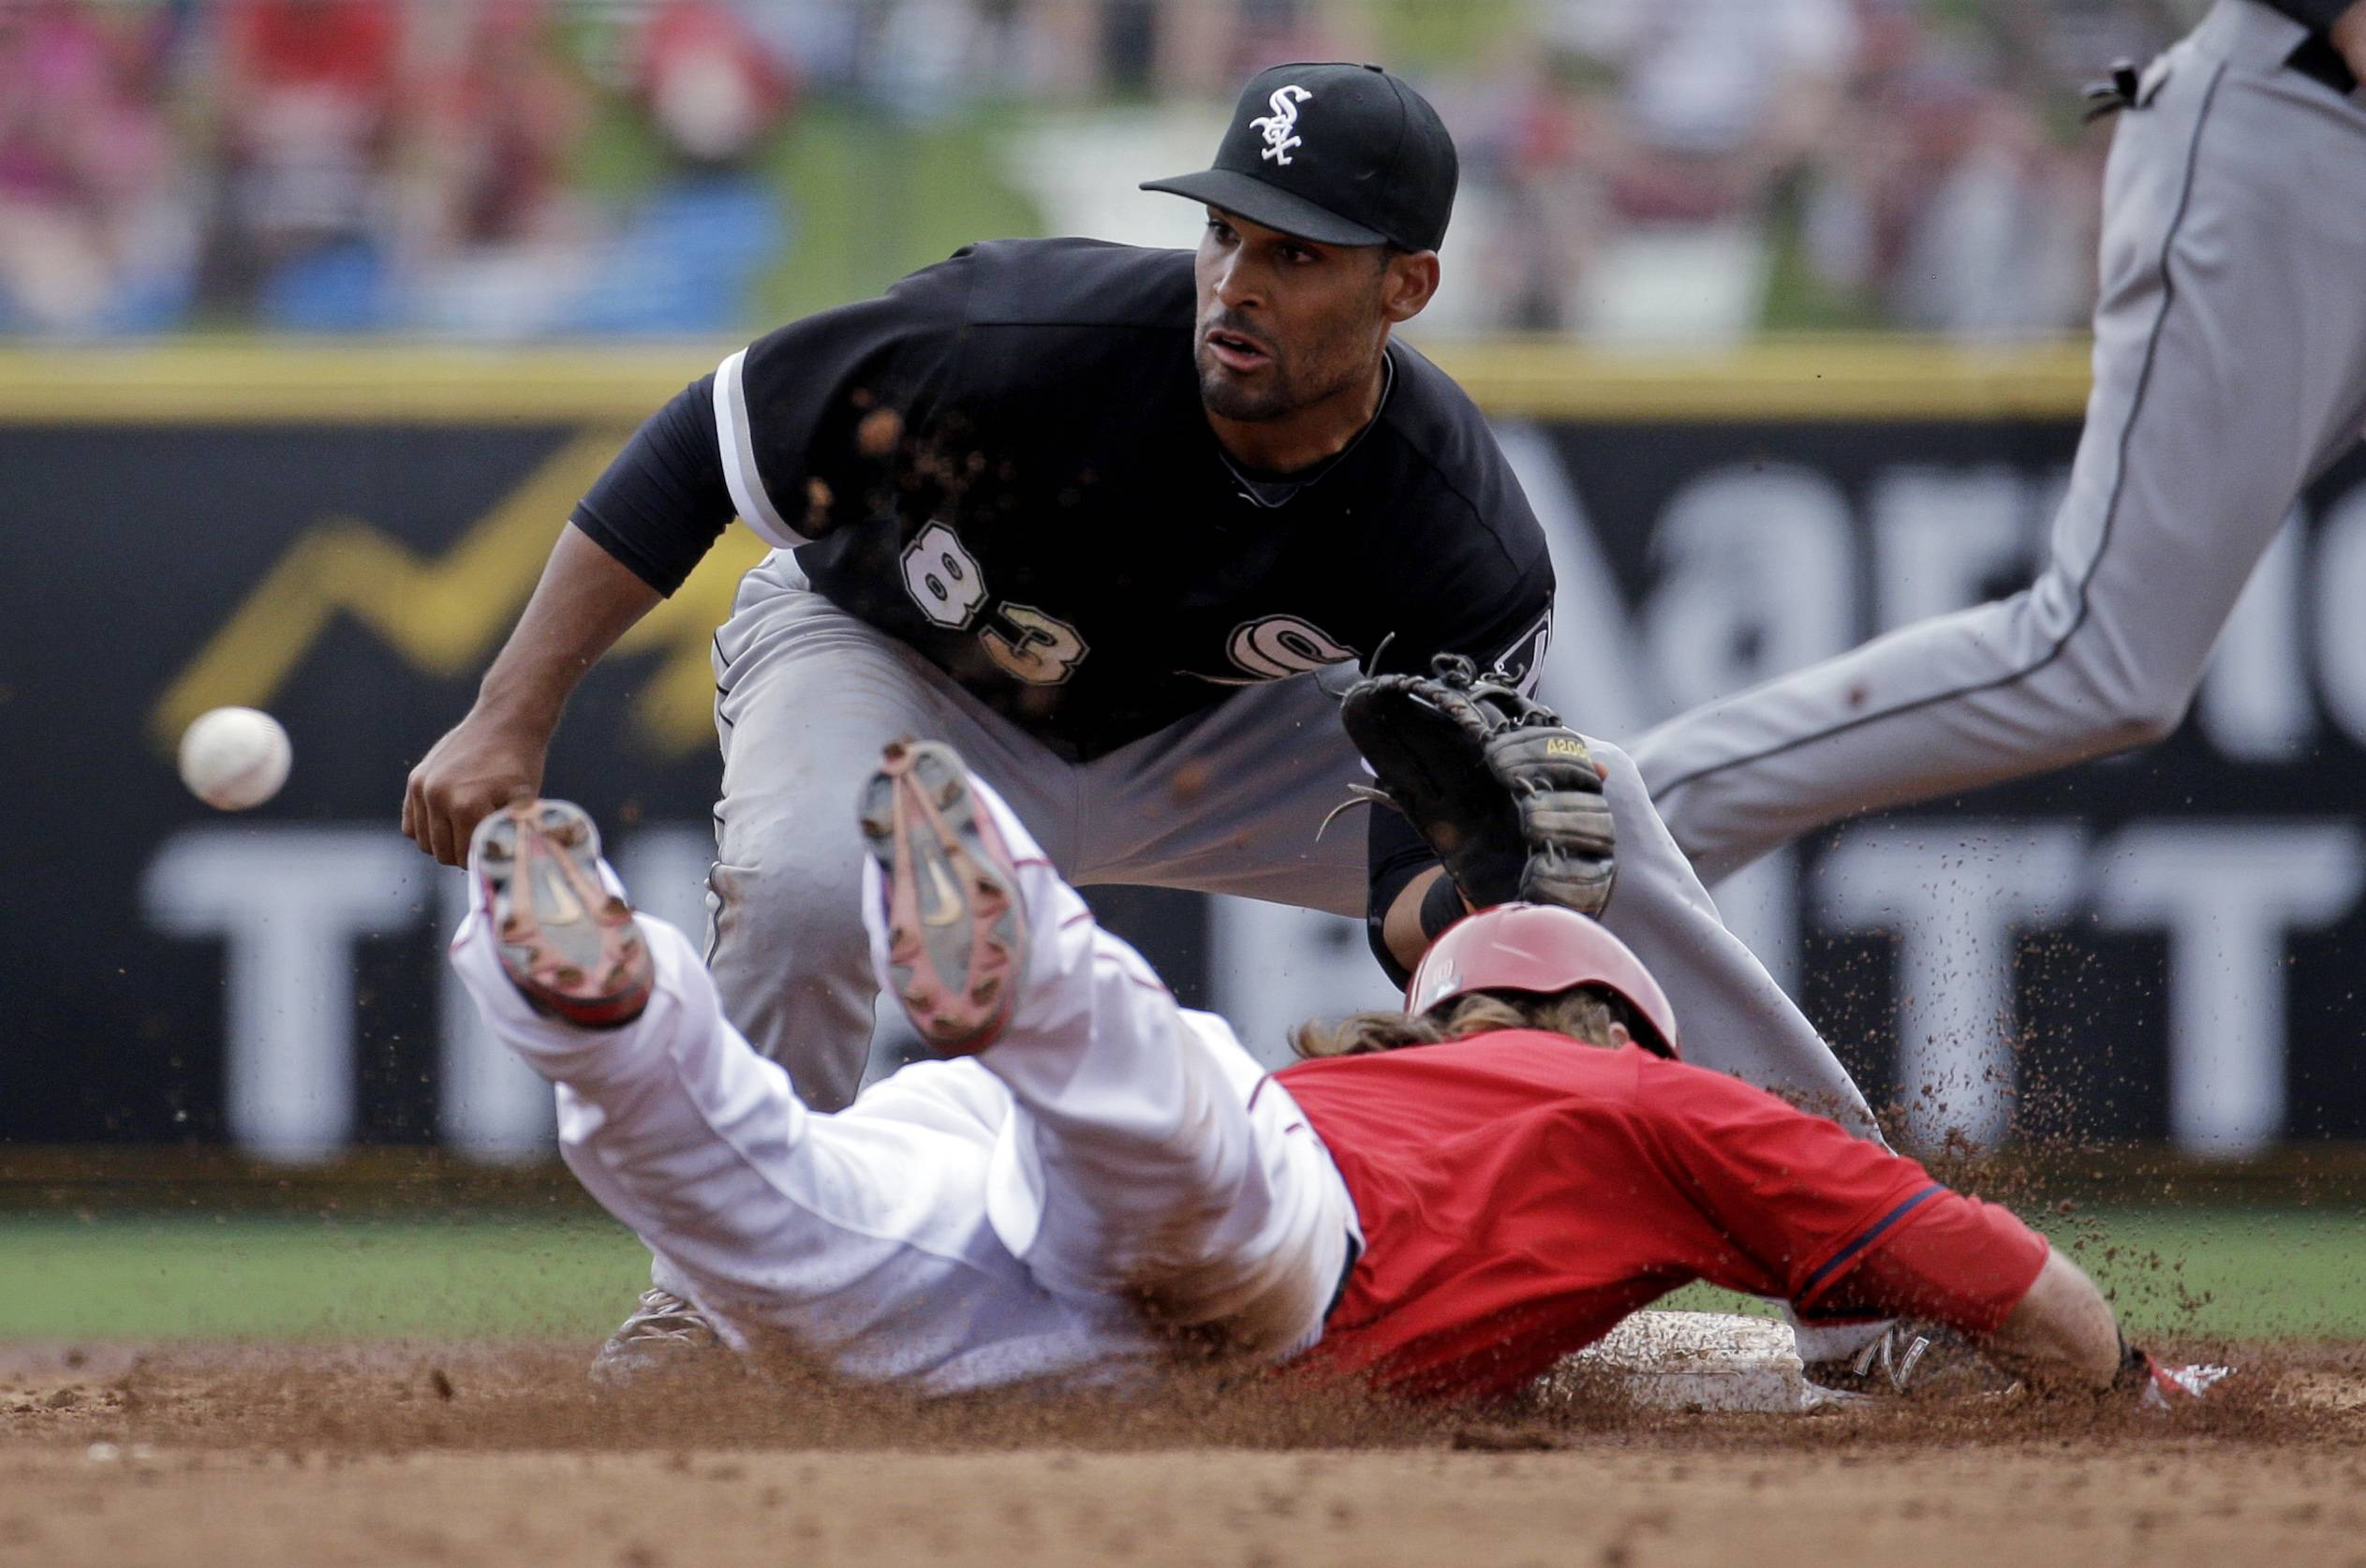 With the trade deadline on the horizon, second baseman Micah Johnson could find himself called up to the White Sox if needed.